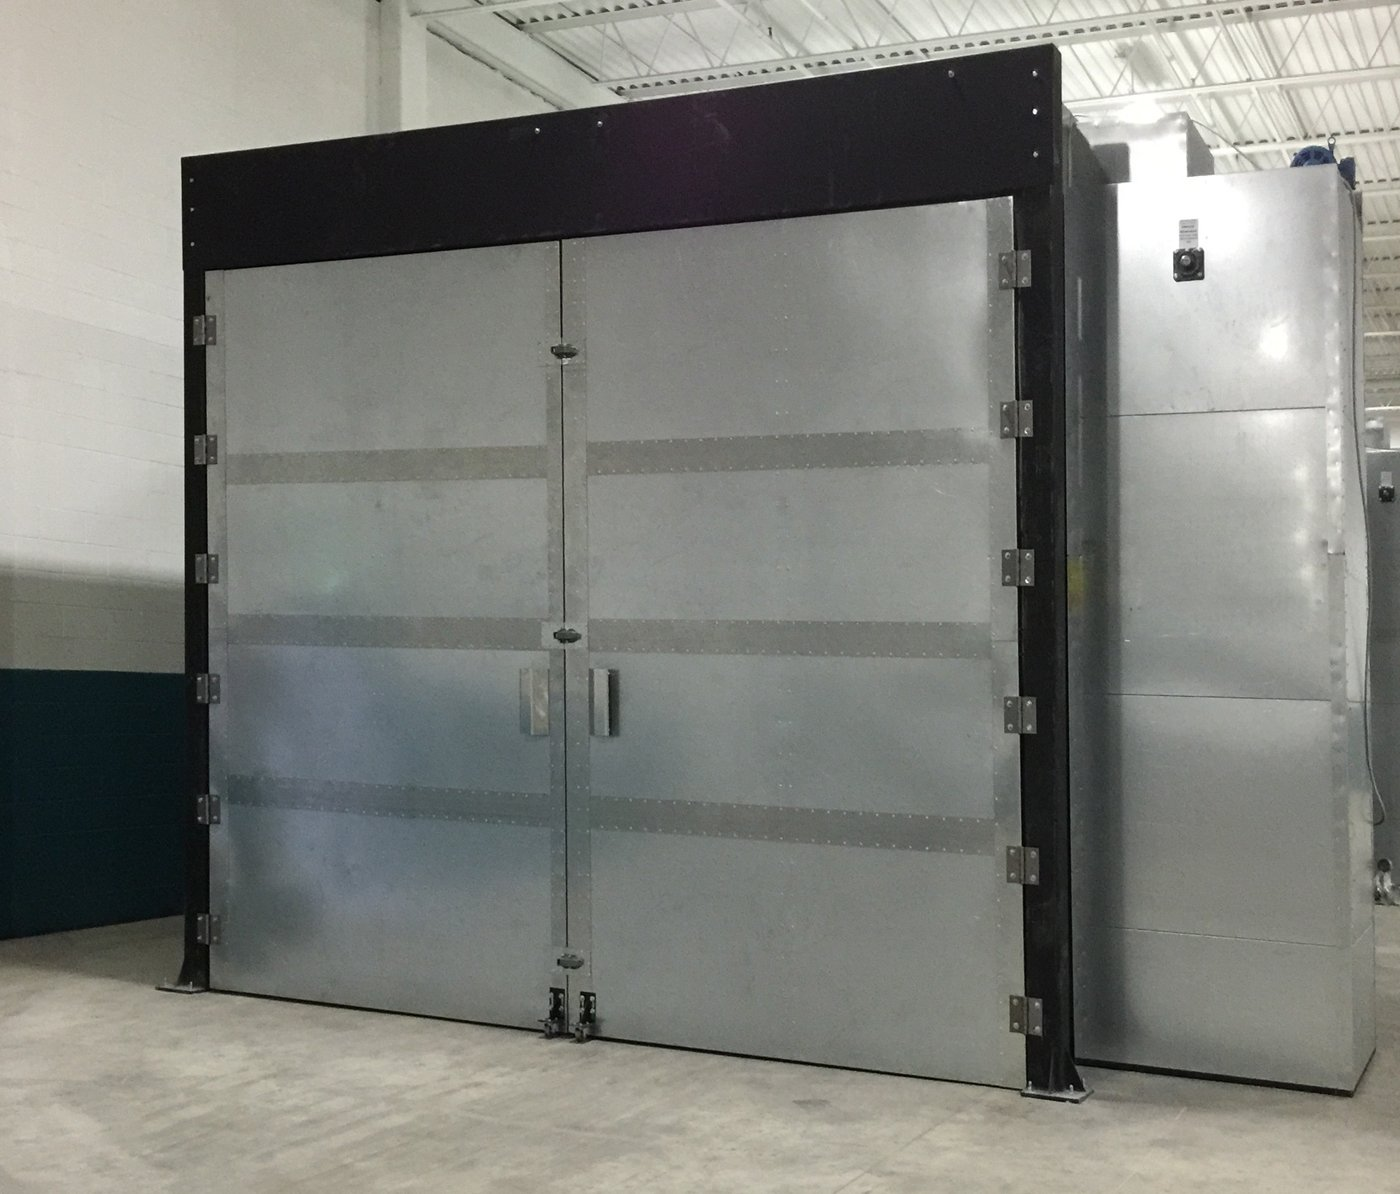 Powder Coating ovens from Reliant Finishing Systems & A Powder Coating Oven Recorder Can Solve Curing Problems